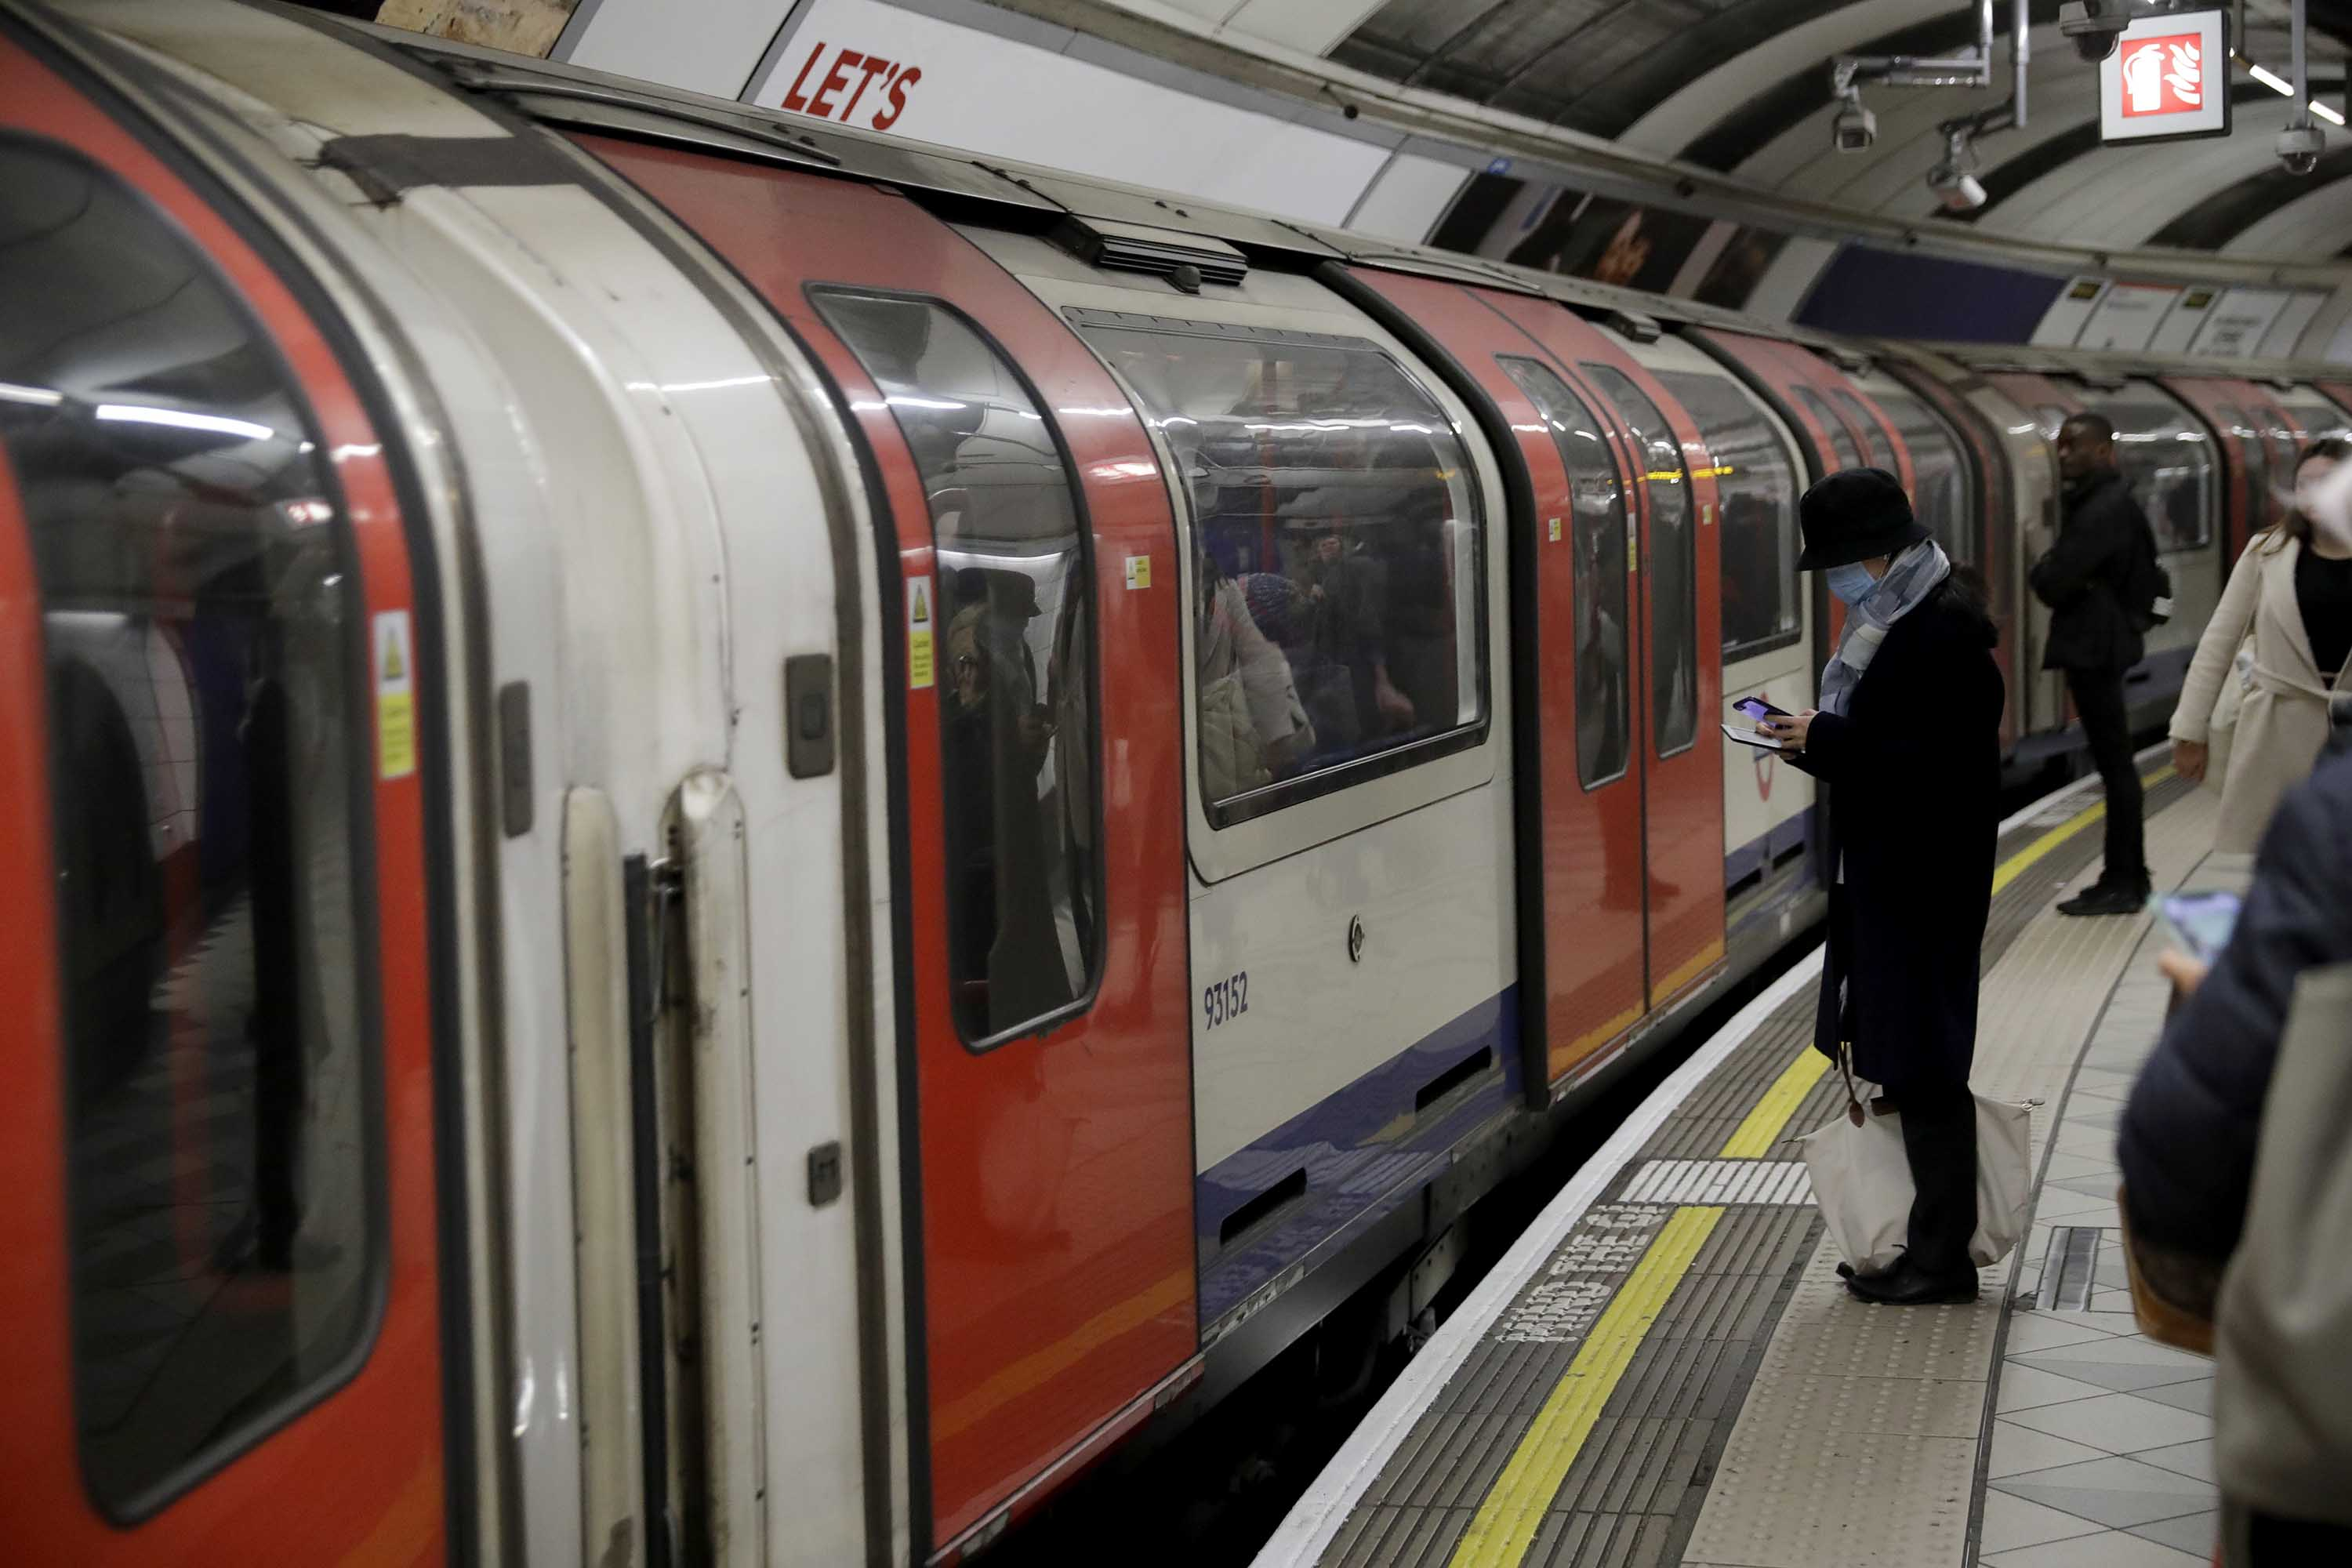 People wait to board an underground train in London, England, on March 4.